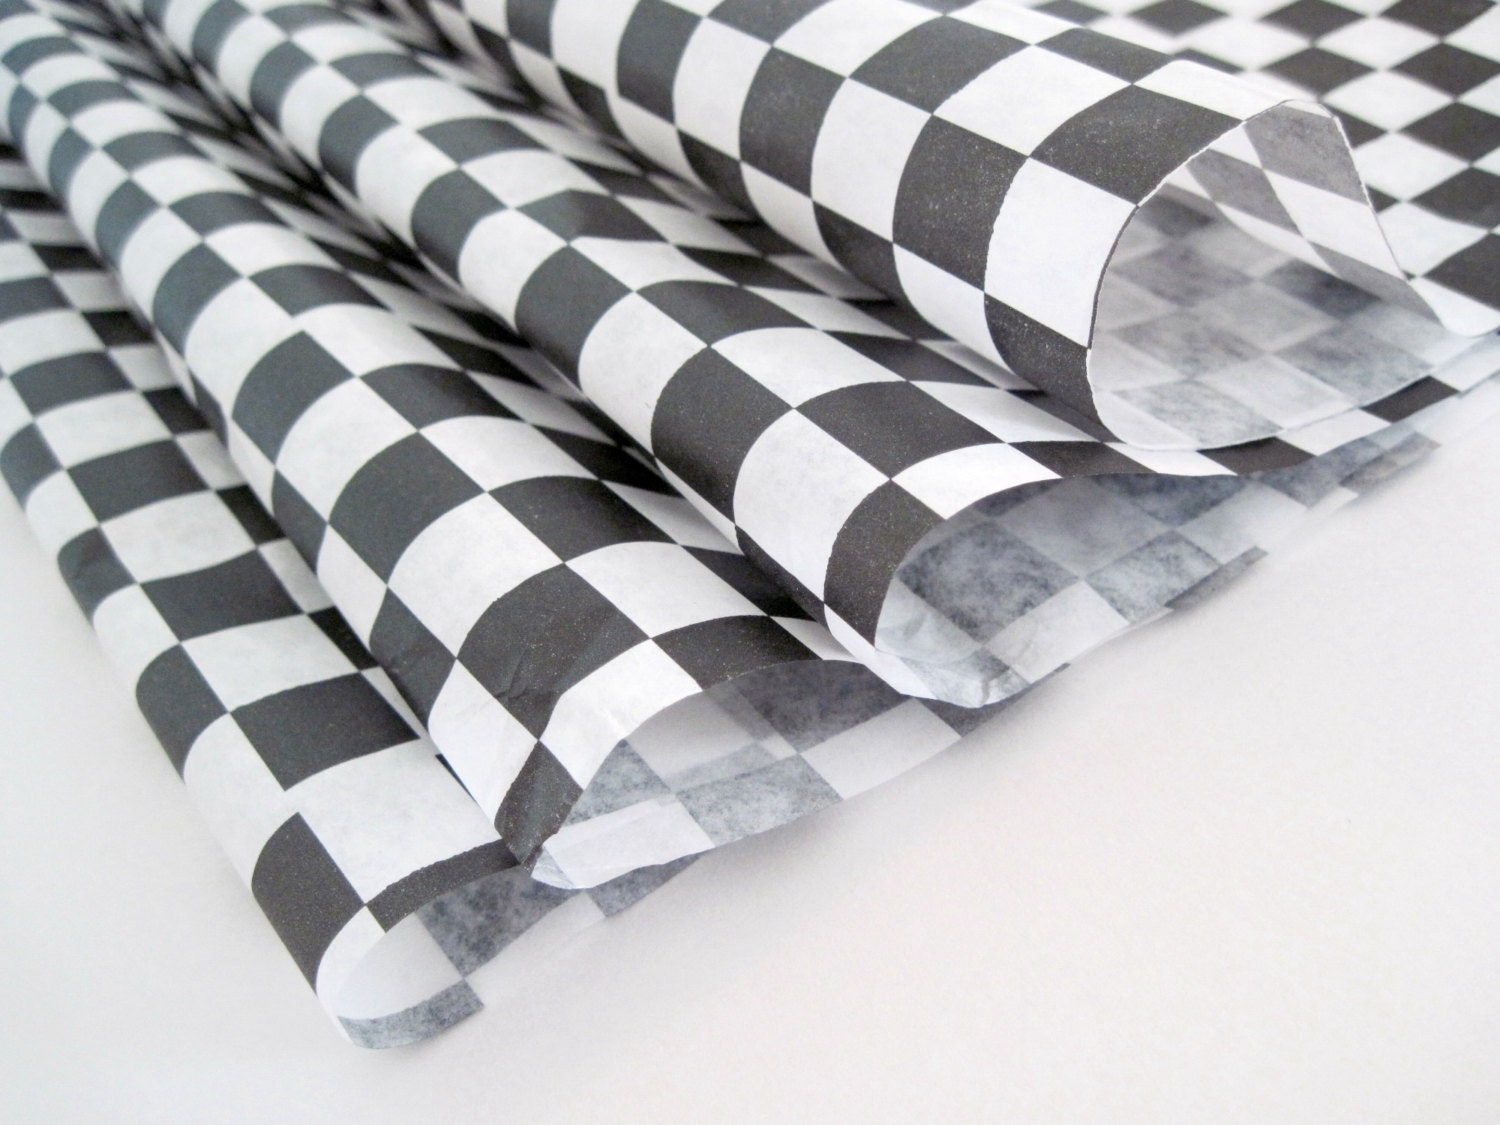 Sandwich Deli Wrap Paper : Wax paper sheets of black and white checkered